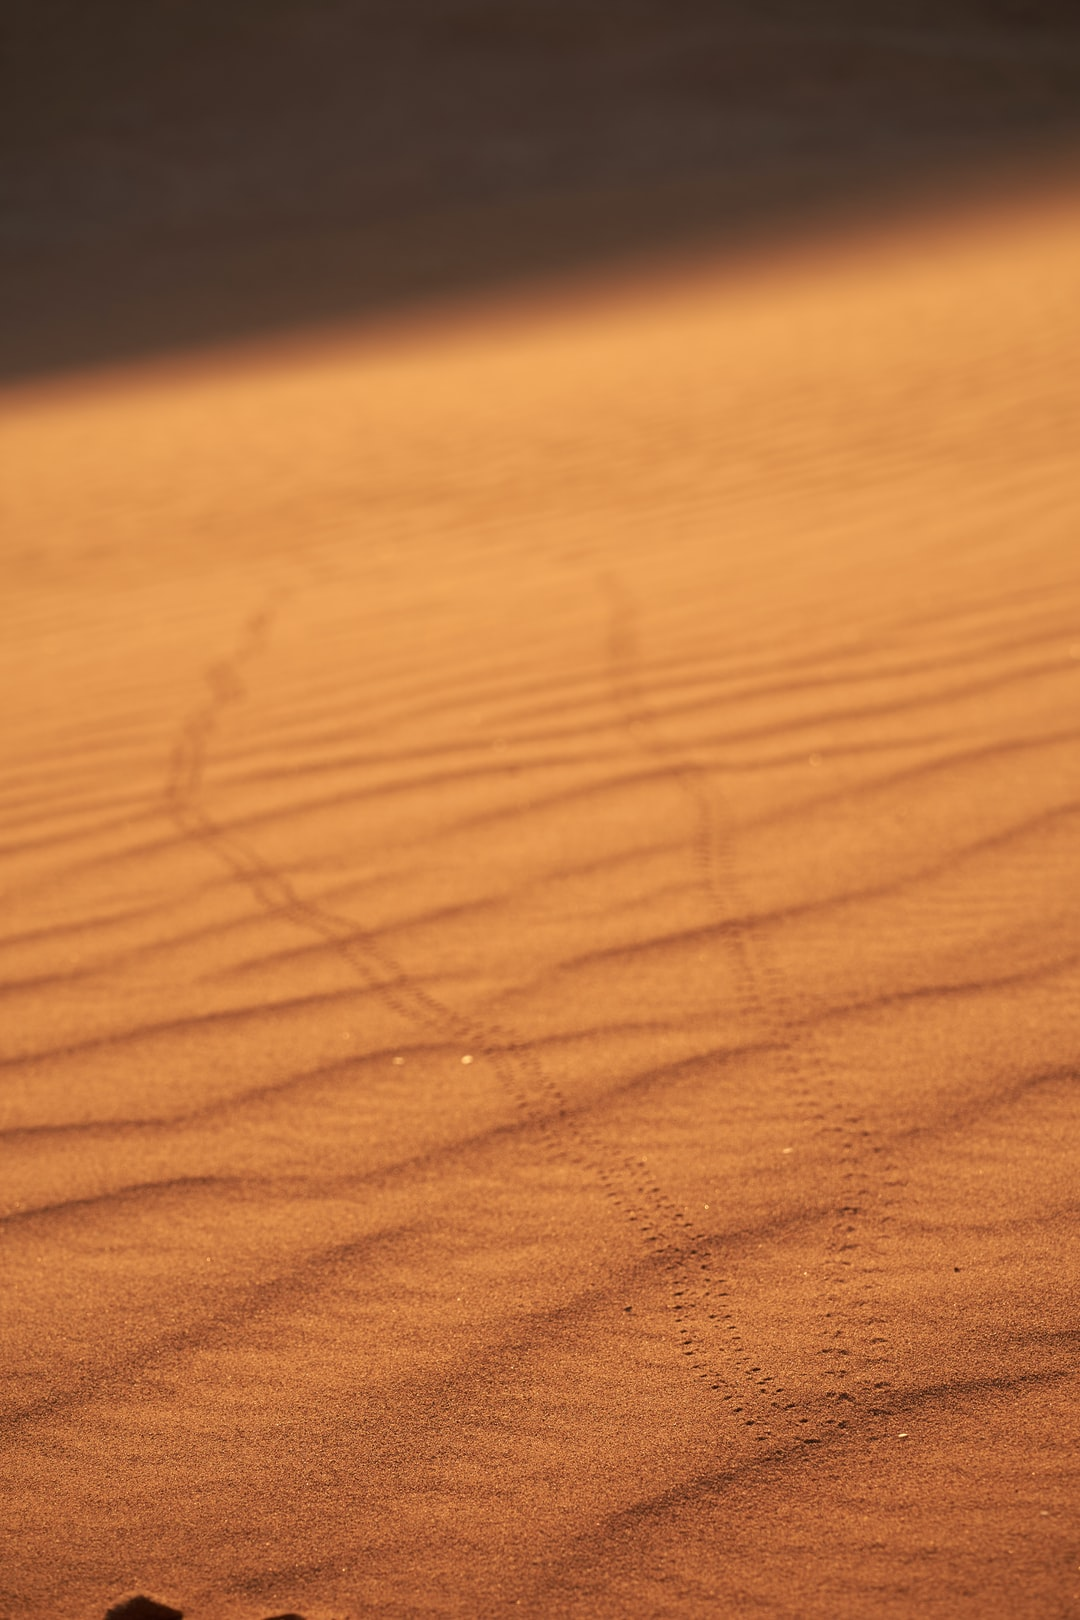 we have been sitting on a dune to see the sun set and a beetle came towards us when he recognize us he turned around and disappear´s. I was to slow to put the right lens on so I have just the picture of the track not the bug